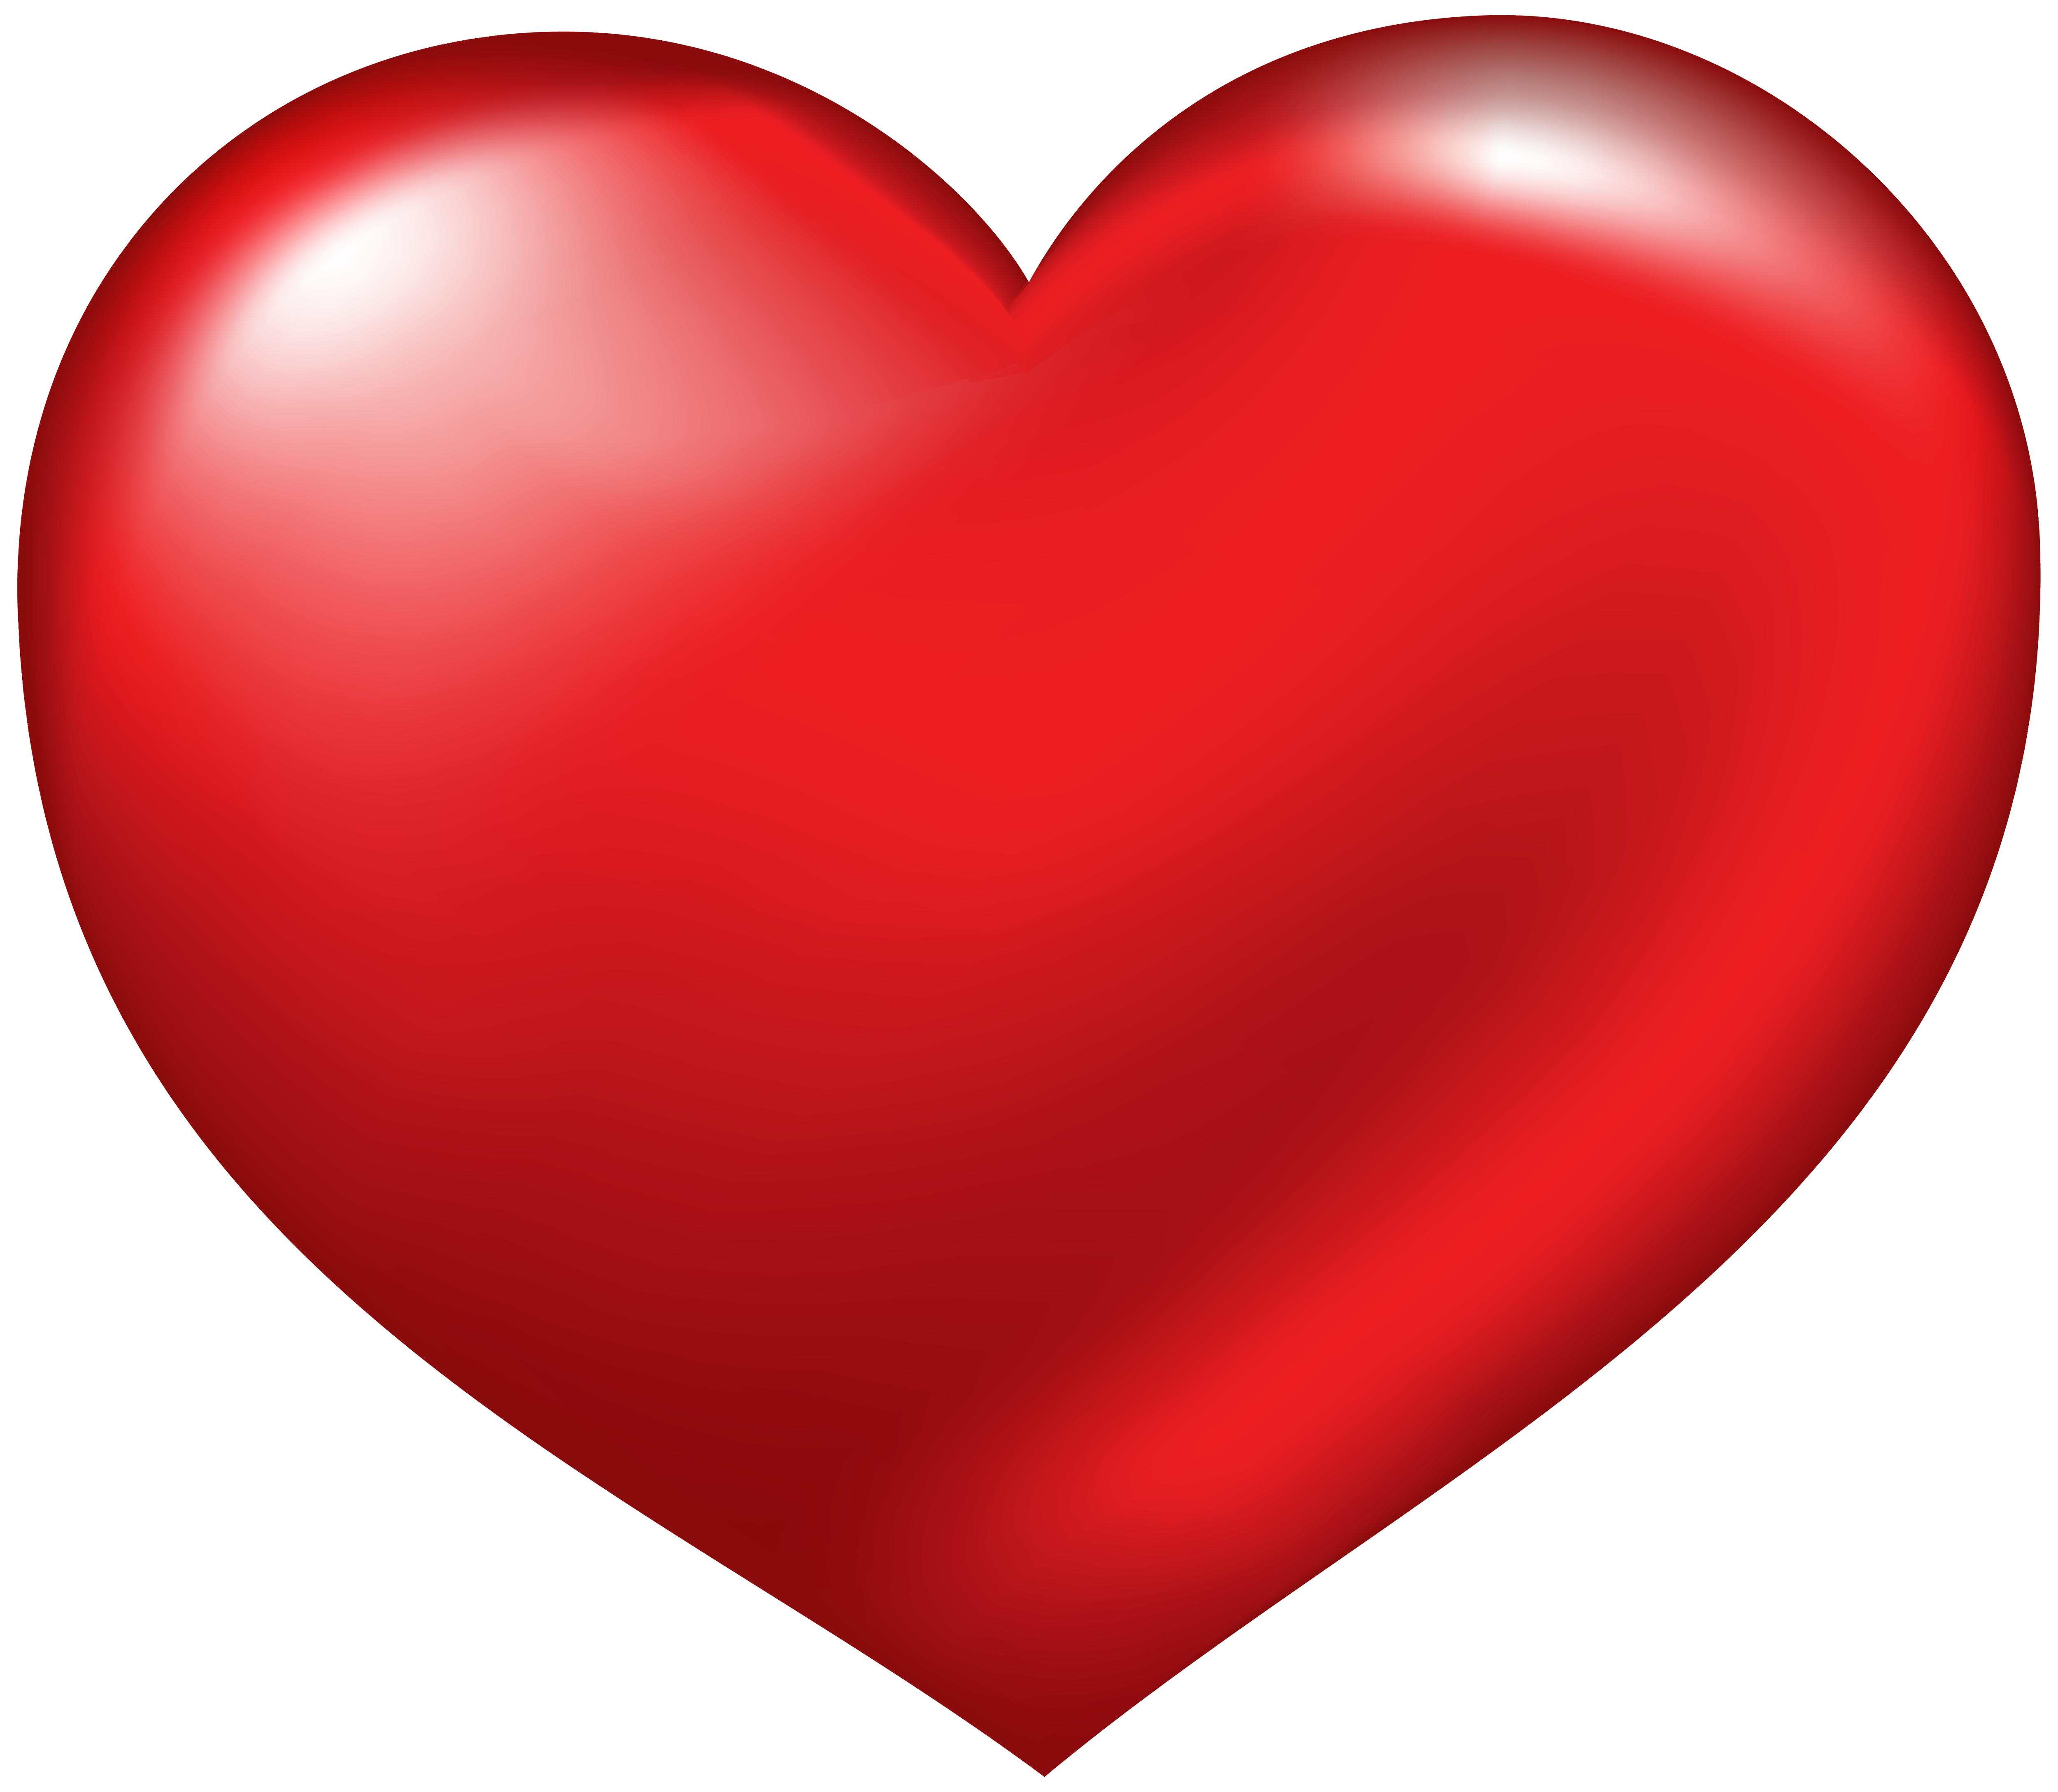 Heart clipart best web. Red hearts png